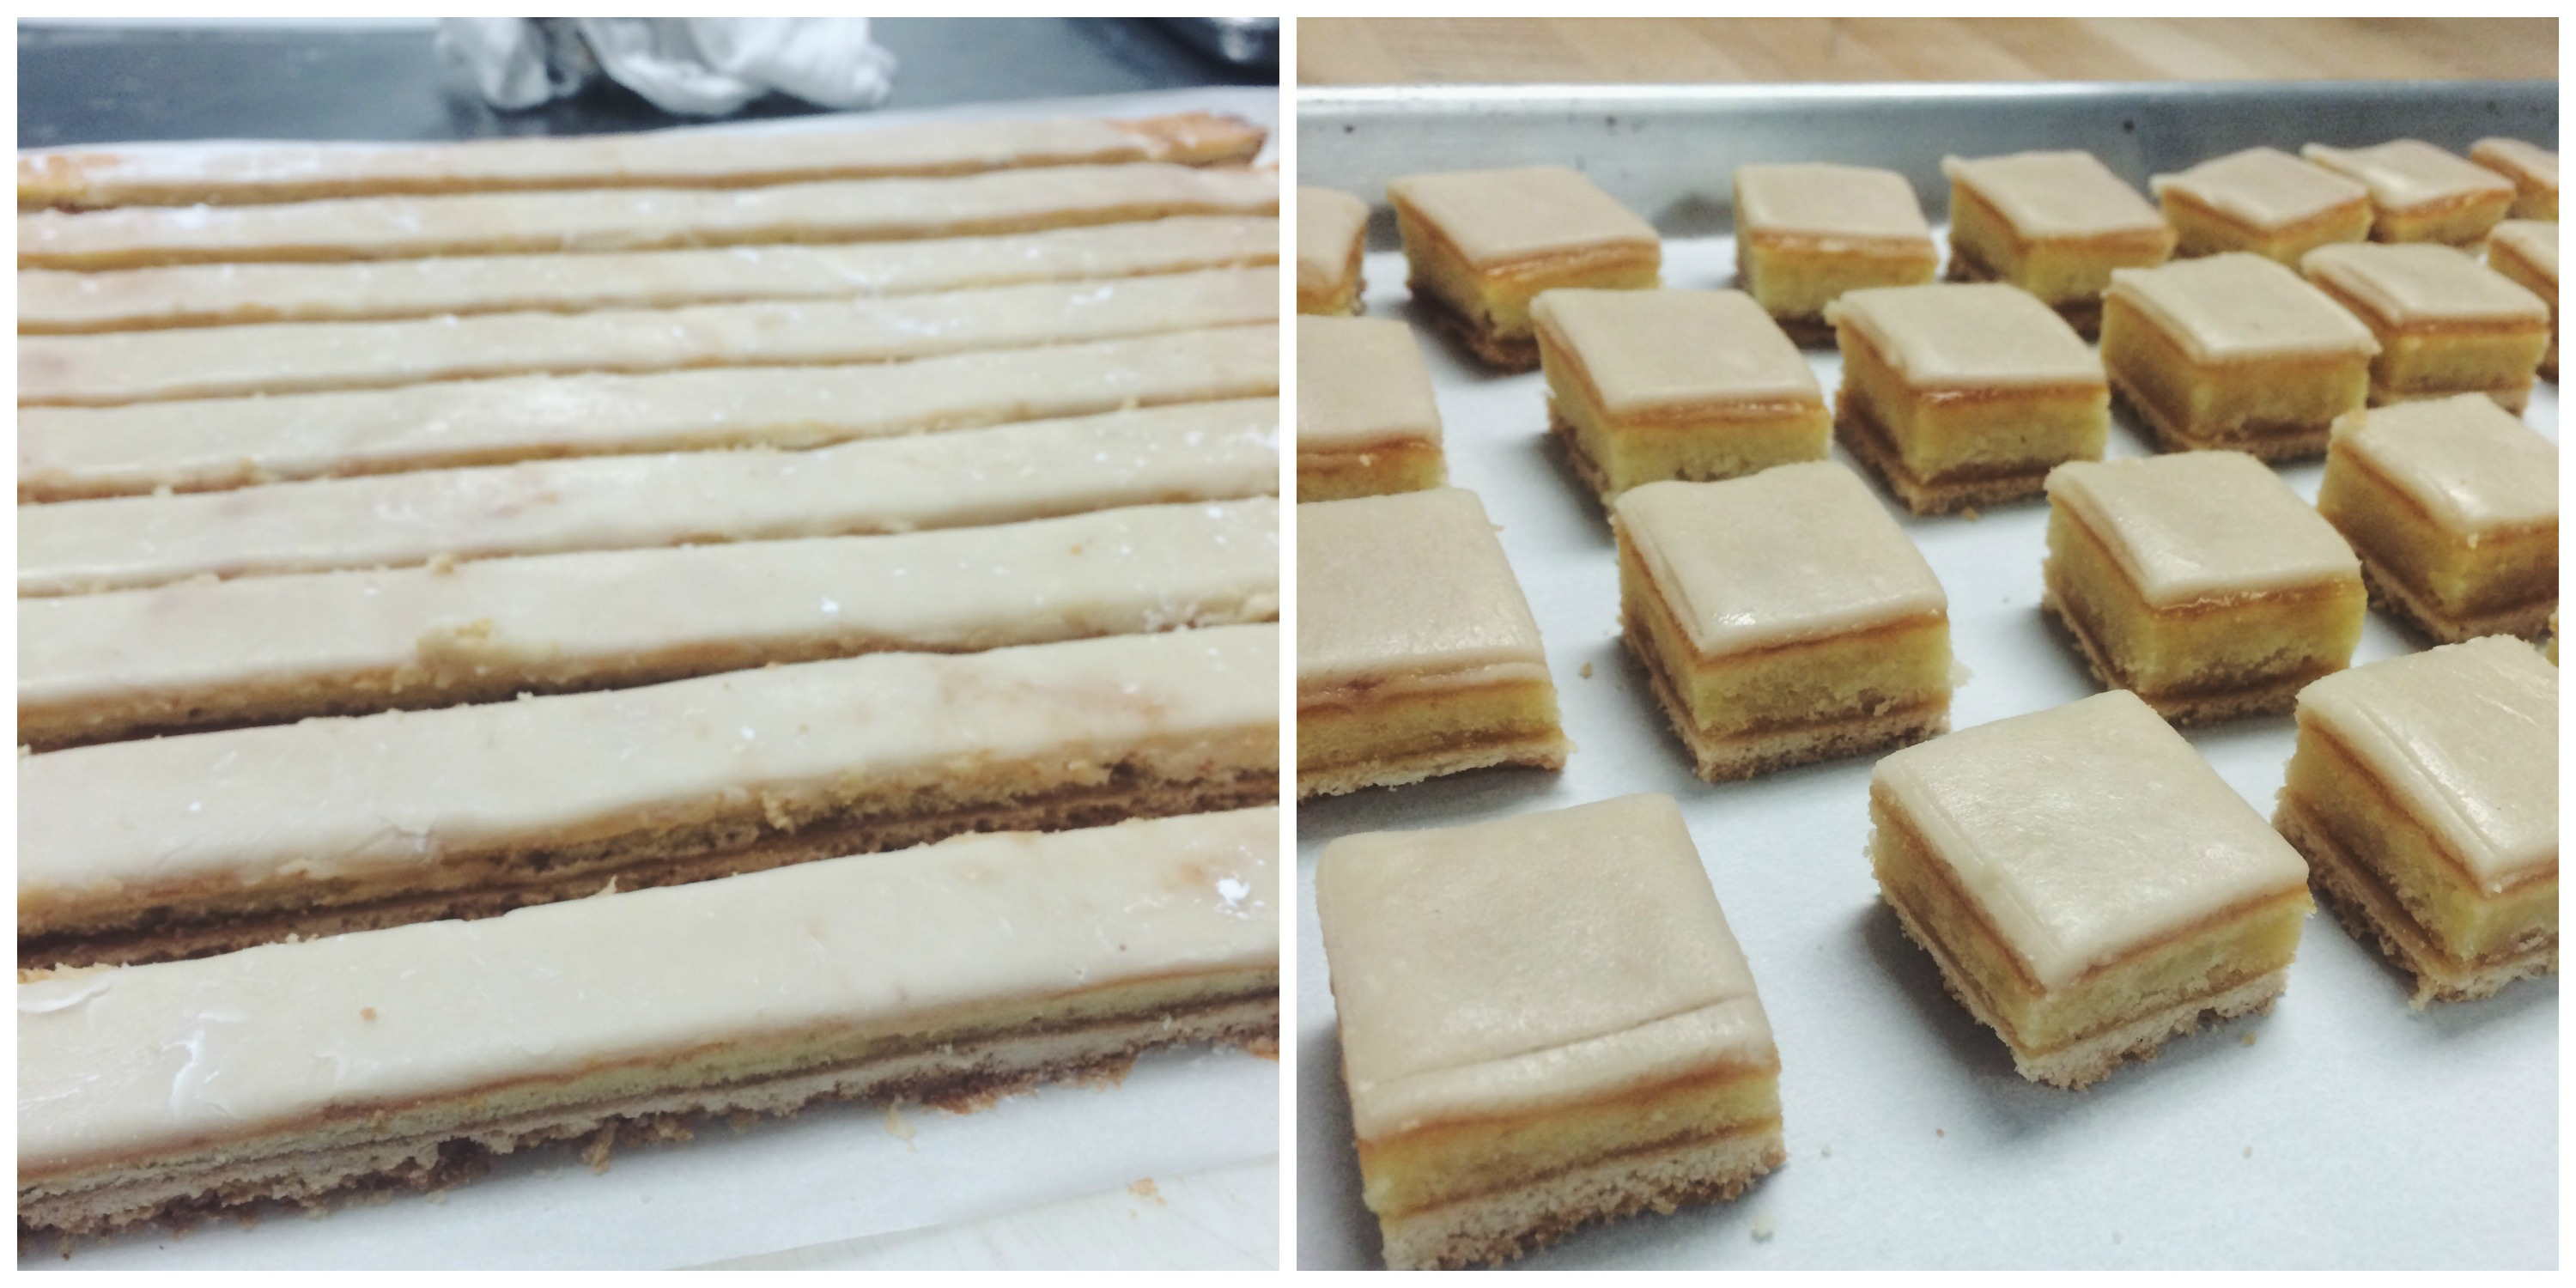 The Making of Petit Fours